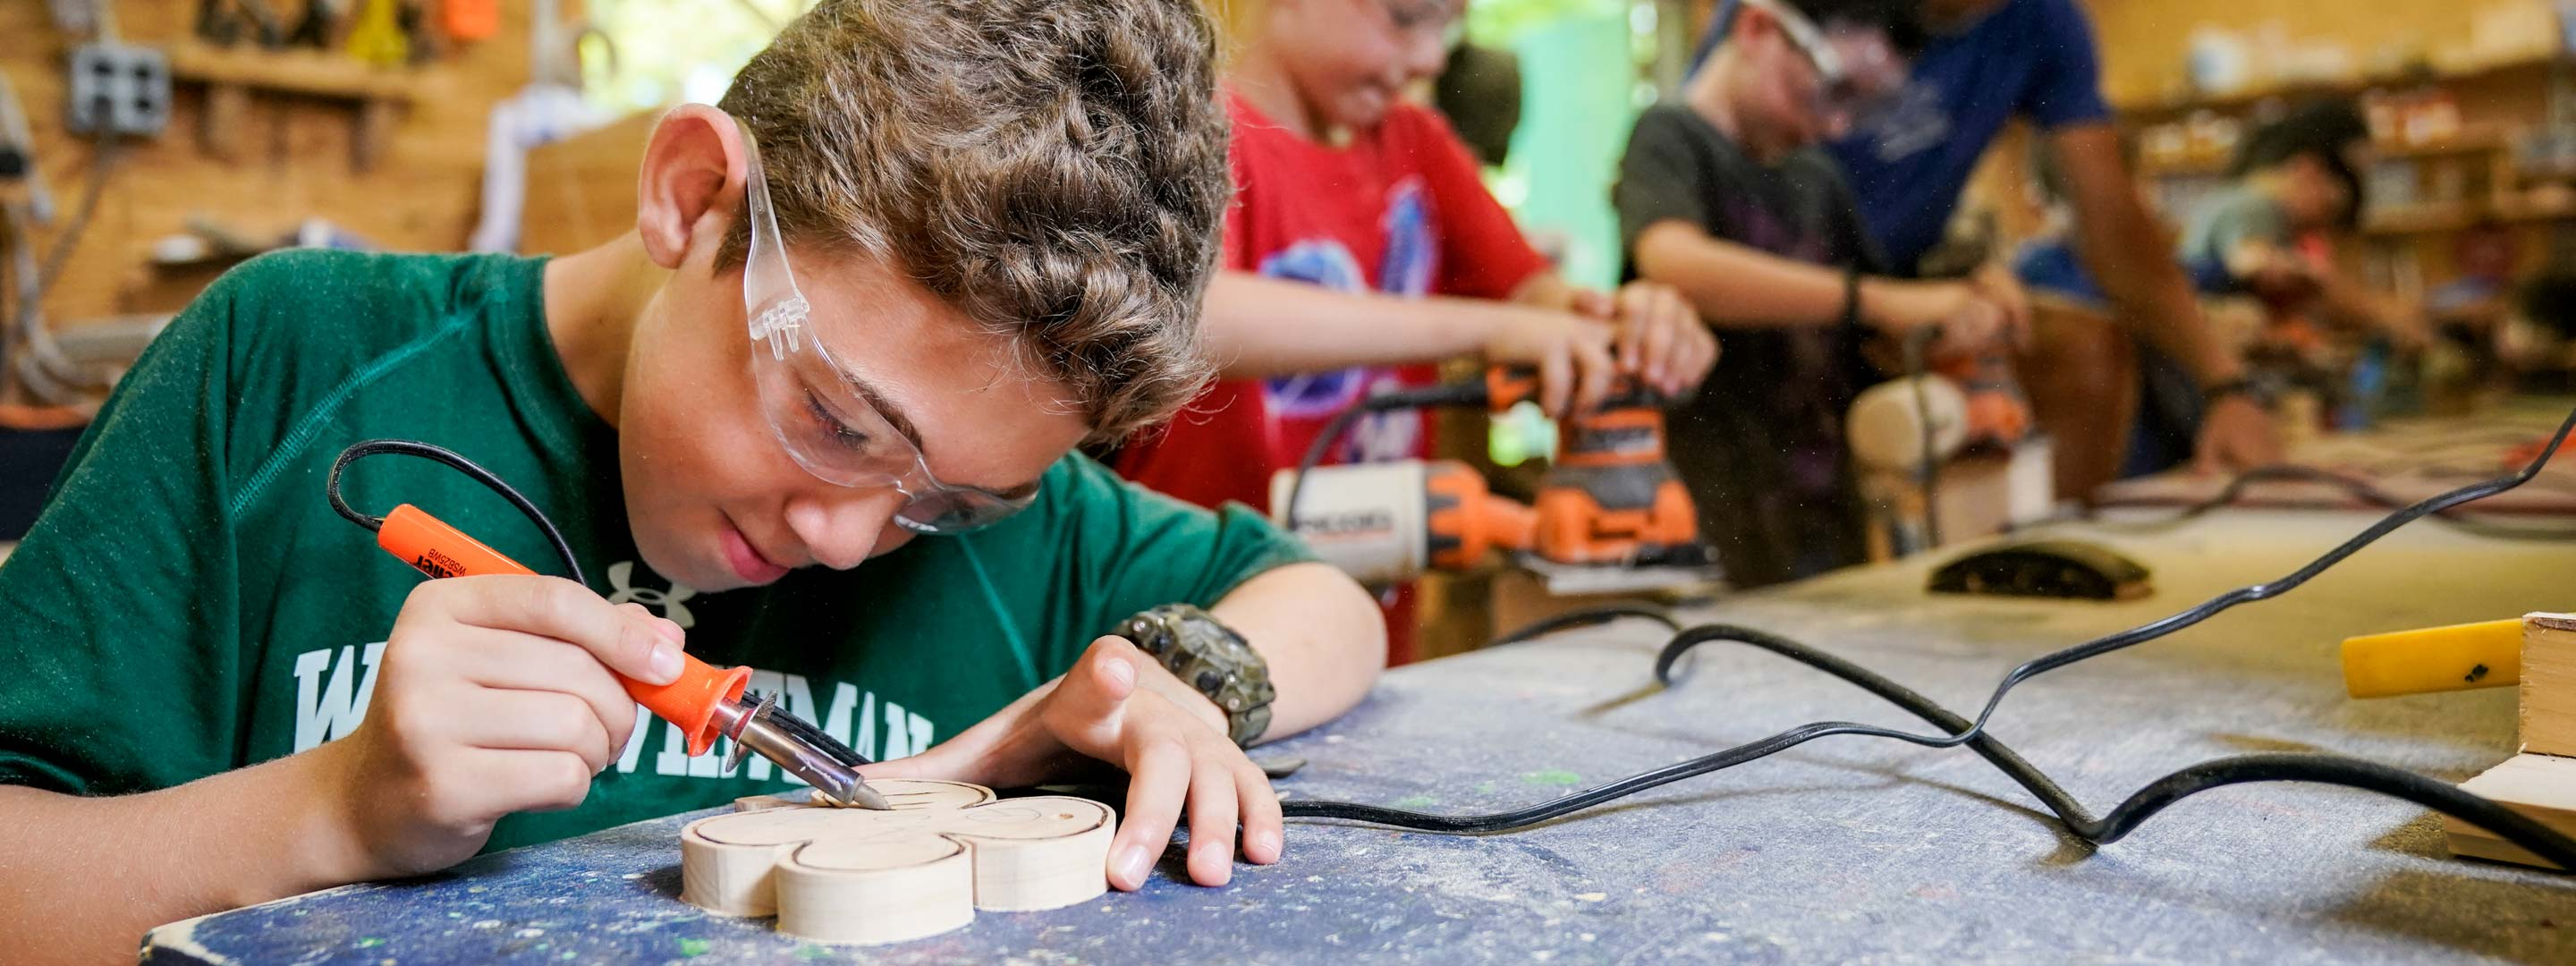 young boy with a soldering iron creating a four leaf clover design